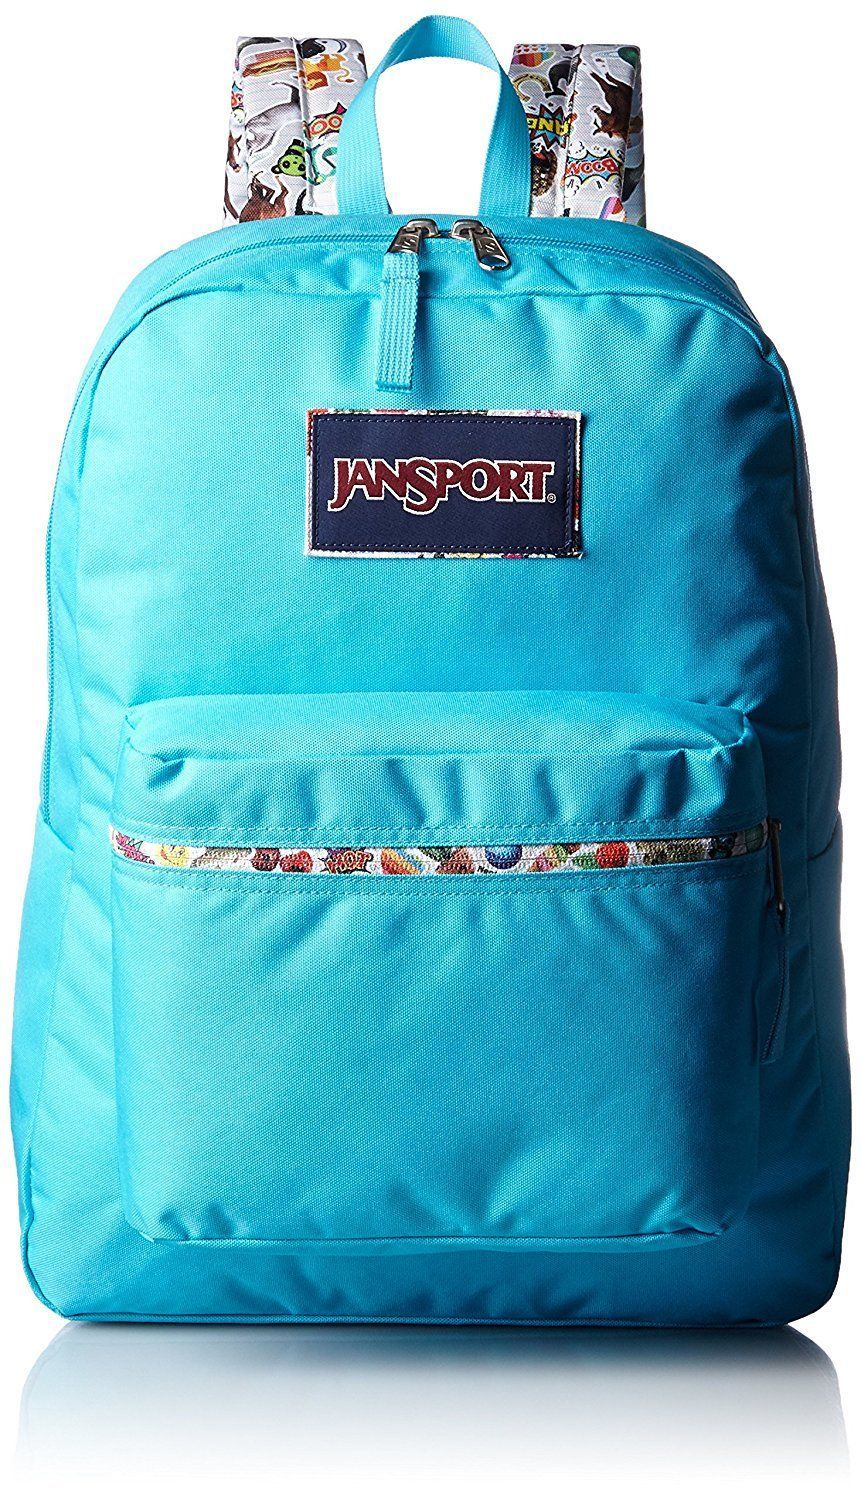 Trans Jansport Backpack Aqua – Patmo Technologies Limited